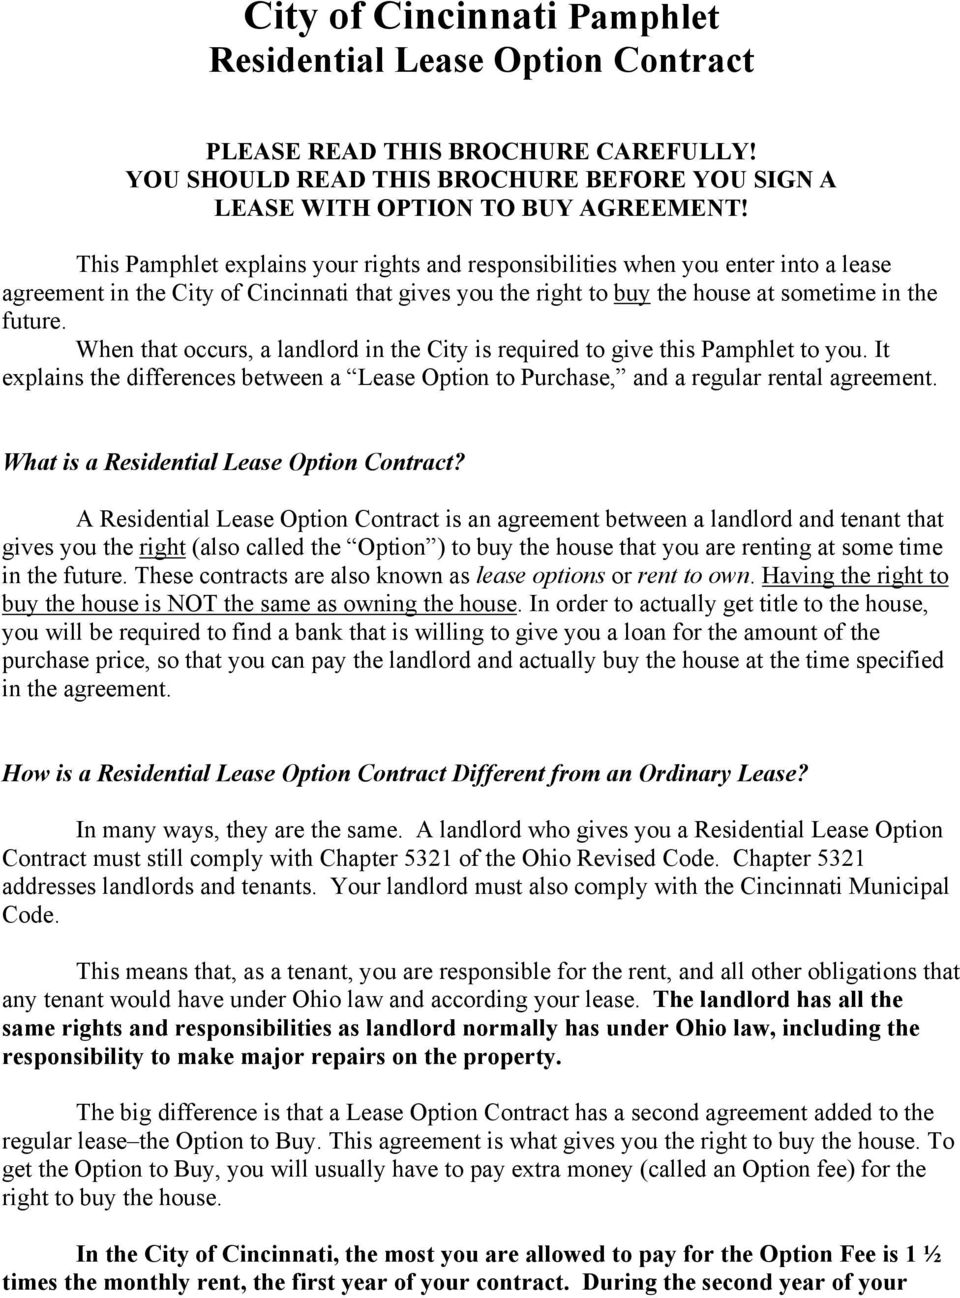 City Of Cincinnati Pamphlet Residential Lease Option Contract Pdf